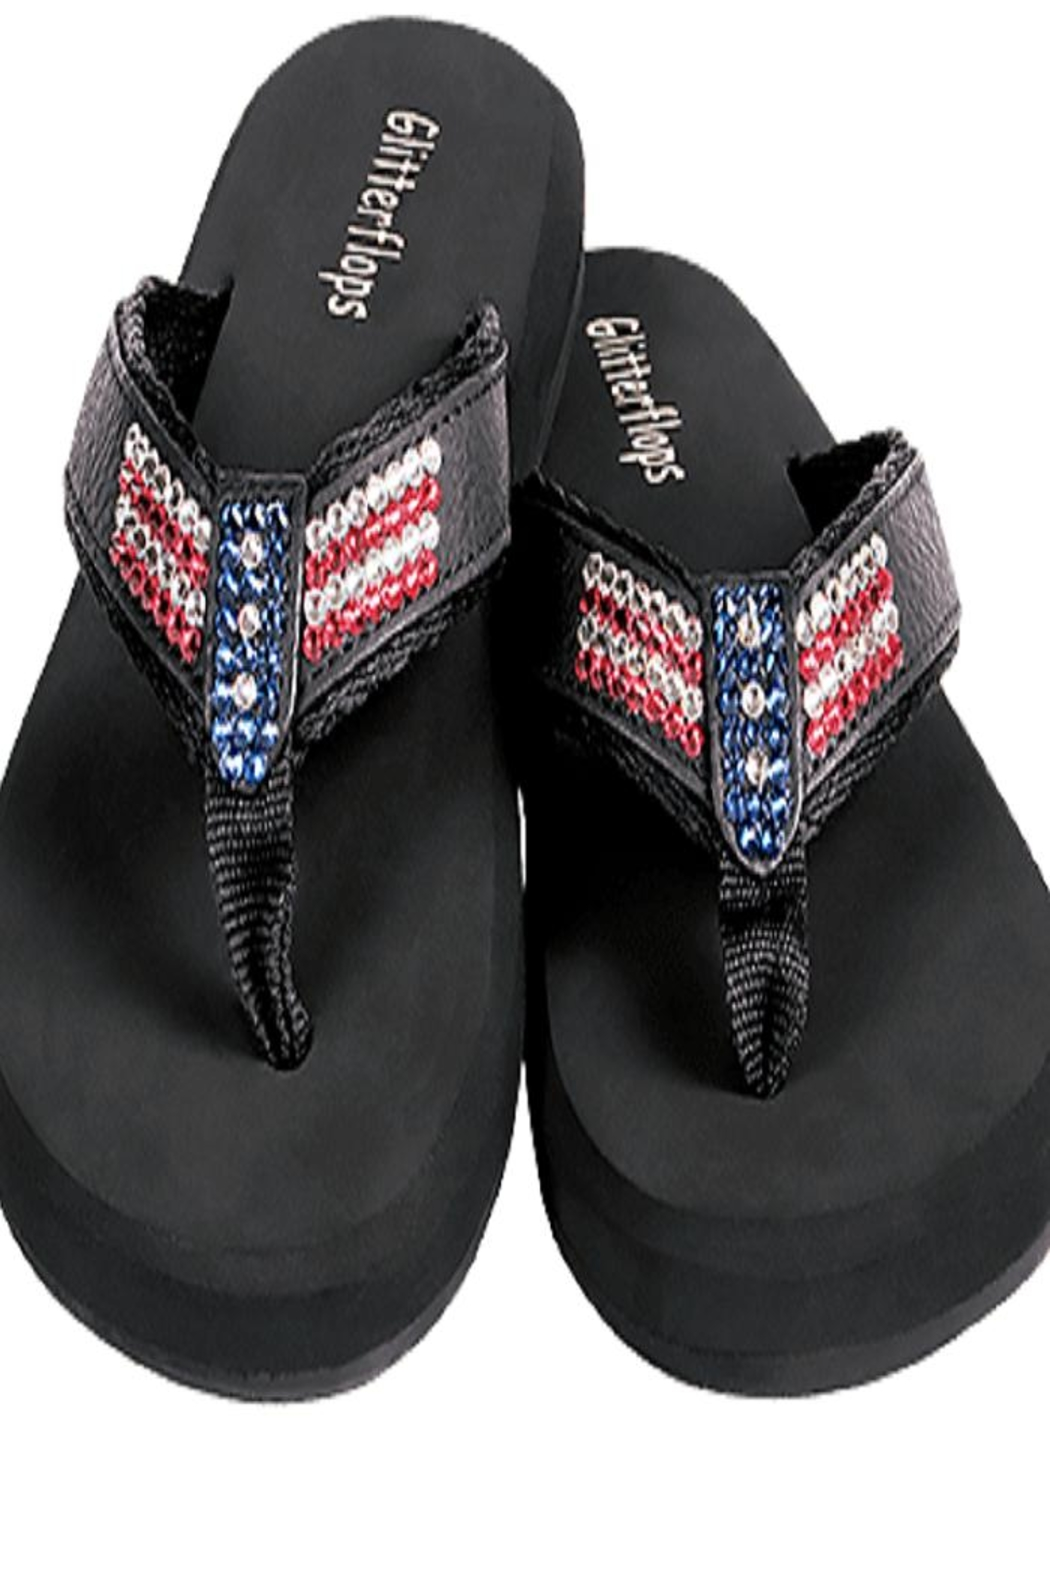 fead3b293 Glitterflops Usa Flip Flops from Texas by Rock2Royal Boutique ...